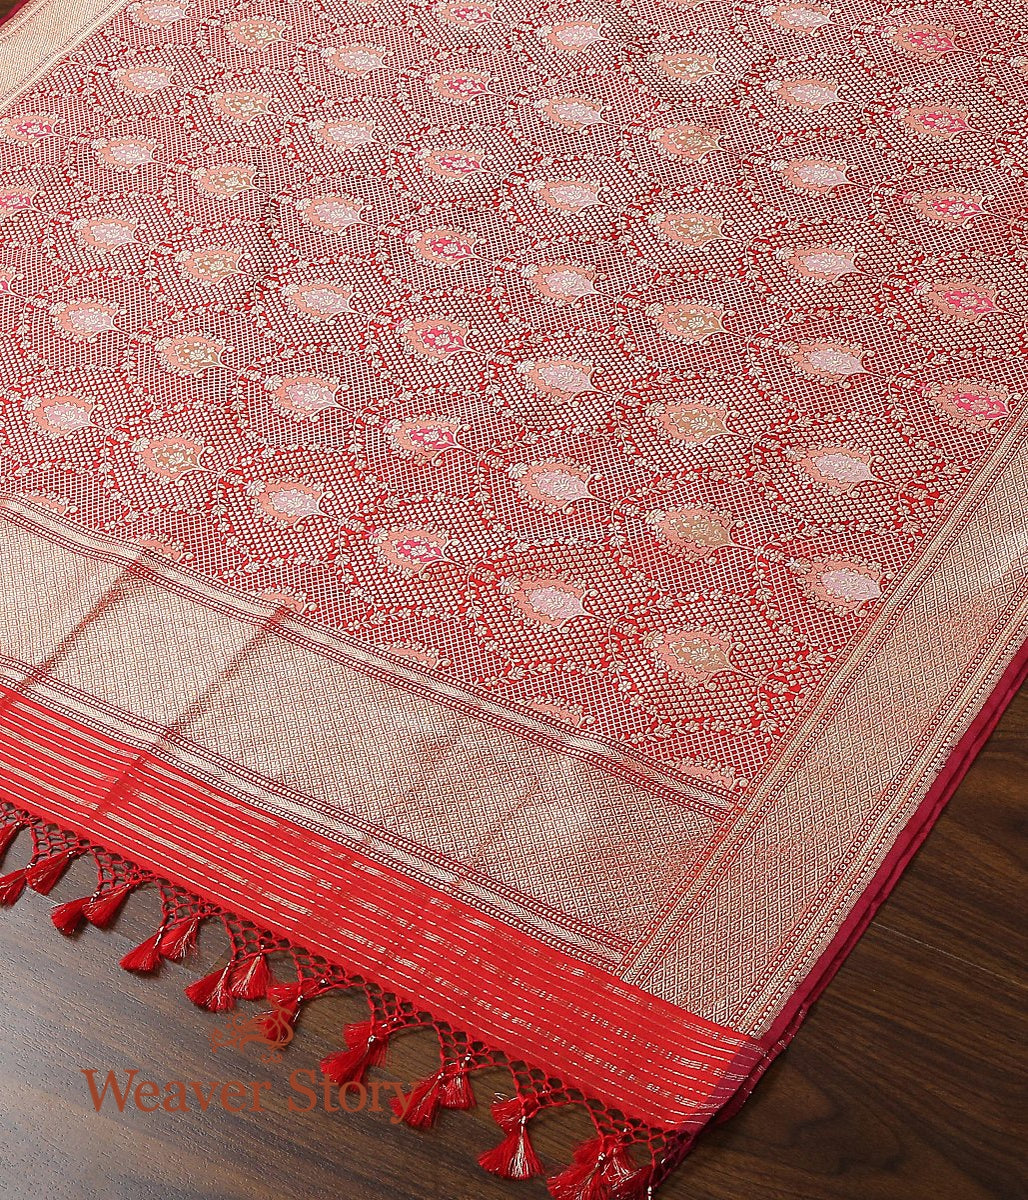 Handwoven Red Kimkhab Dupatta with Meenkaari